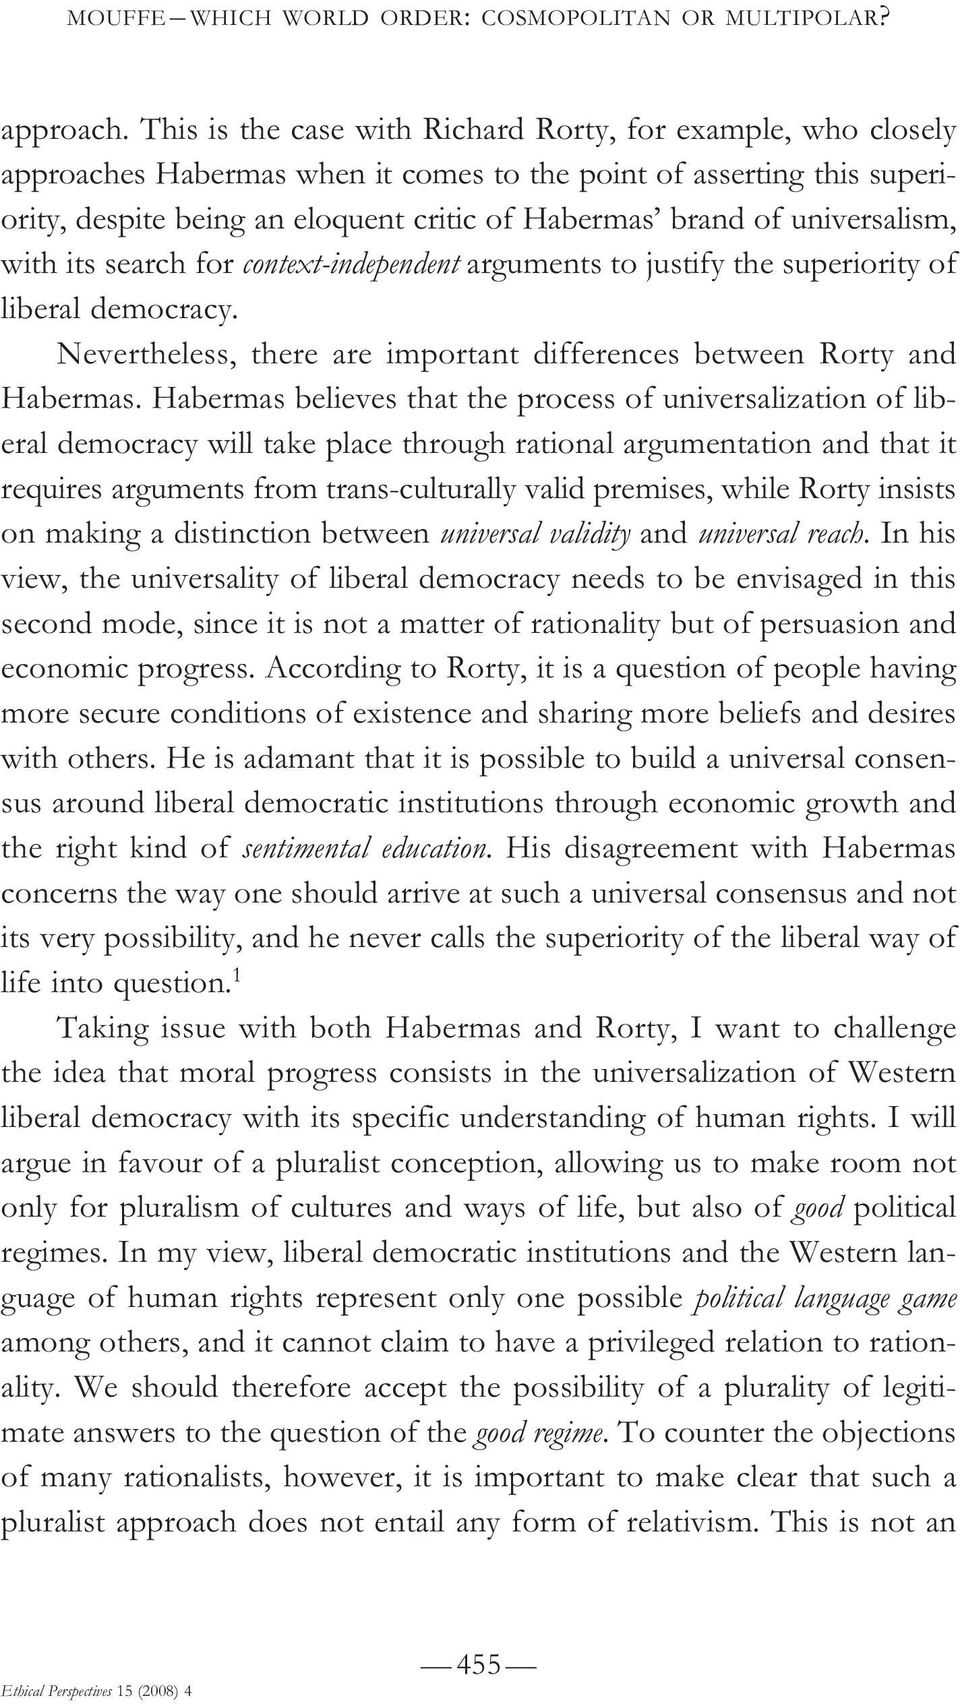 universalism, with its search for context-independent arguments to justify the superiority of liberal democracy. Nevertheless, there are important differences between Rorty and Habermas.